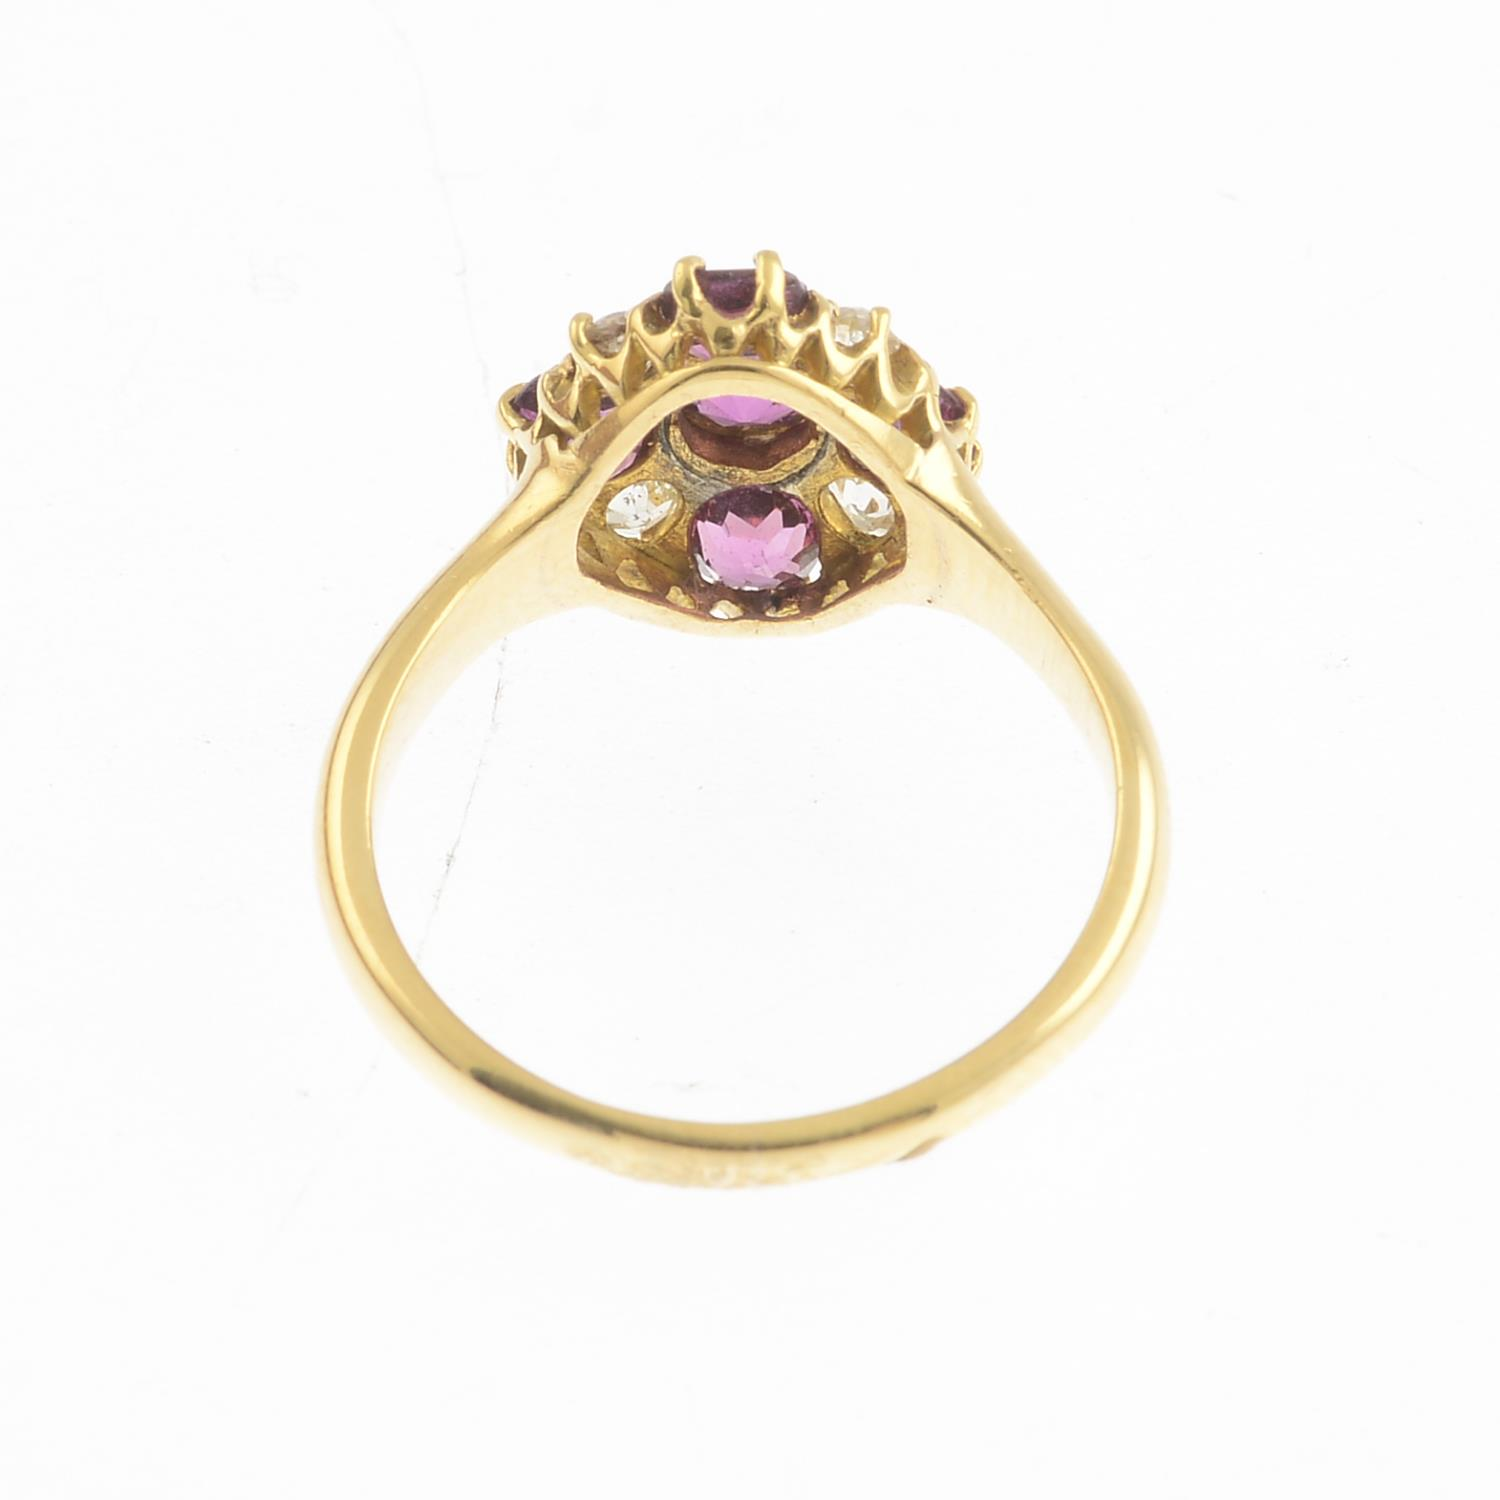 An early 20th century 18ct gold garnet, - Image 2 of 3